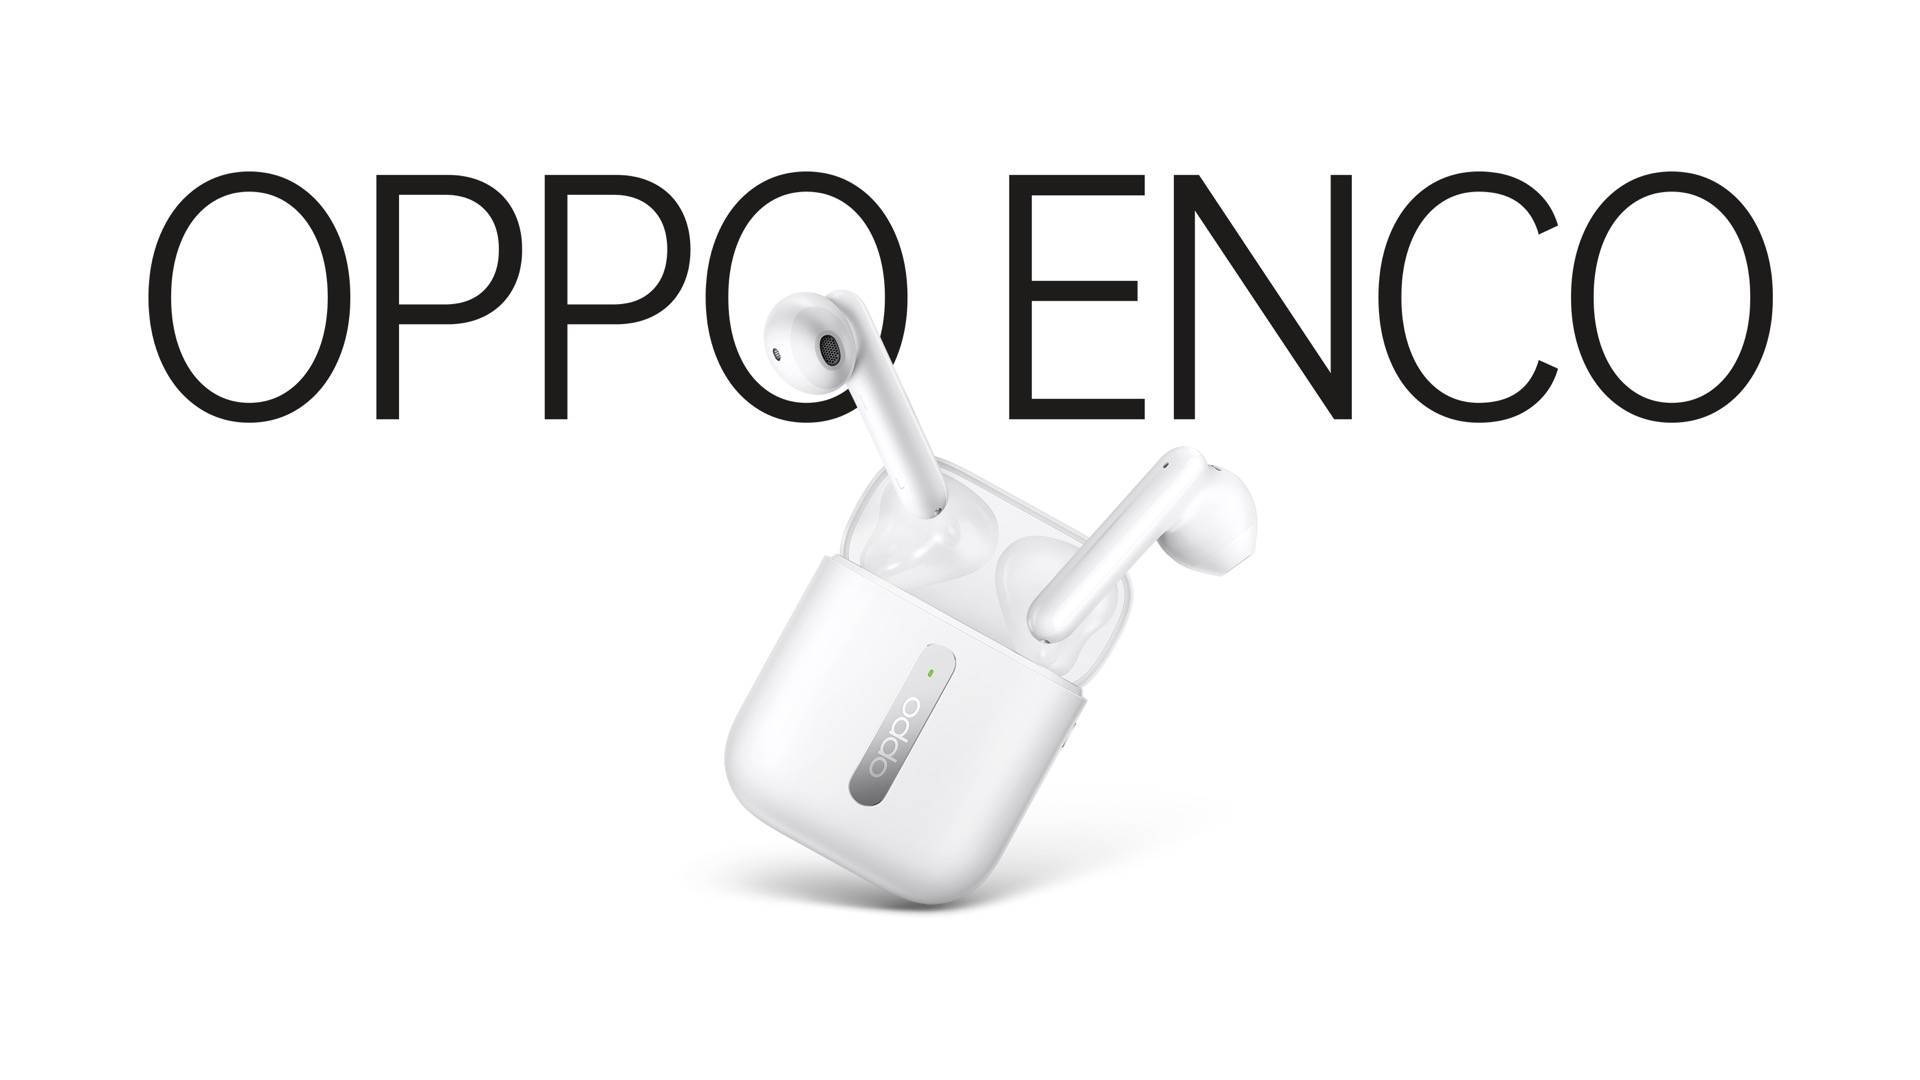 Enco Free truly-wireless earphone is Oppo's affordable Apple Airpods look-alike